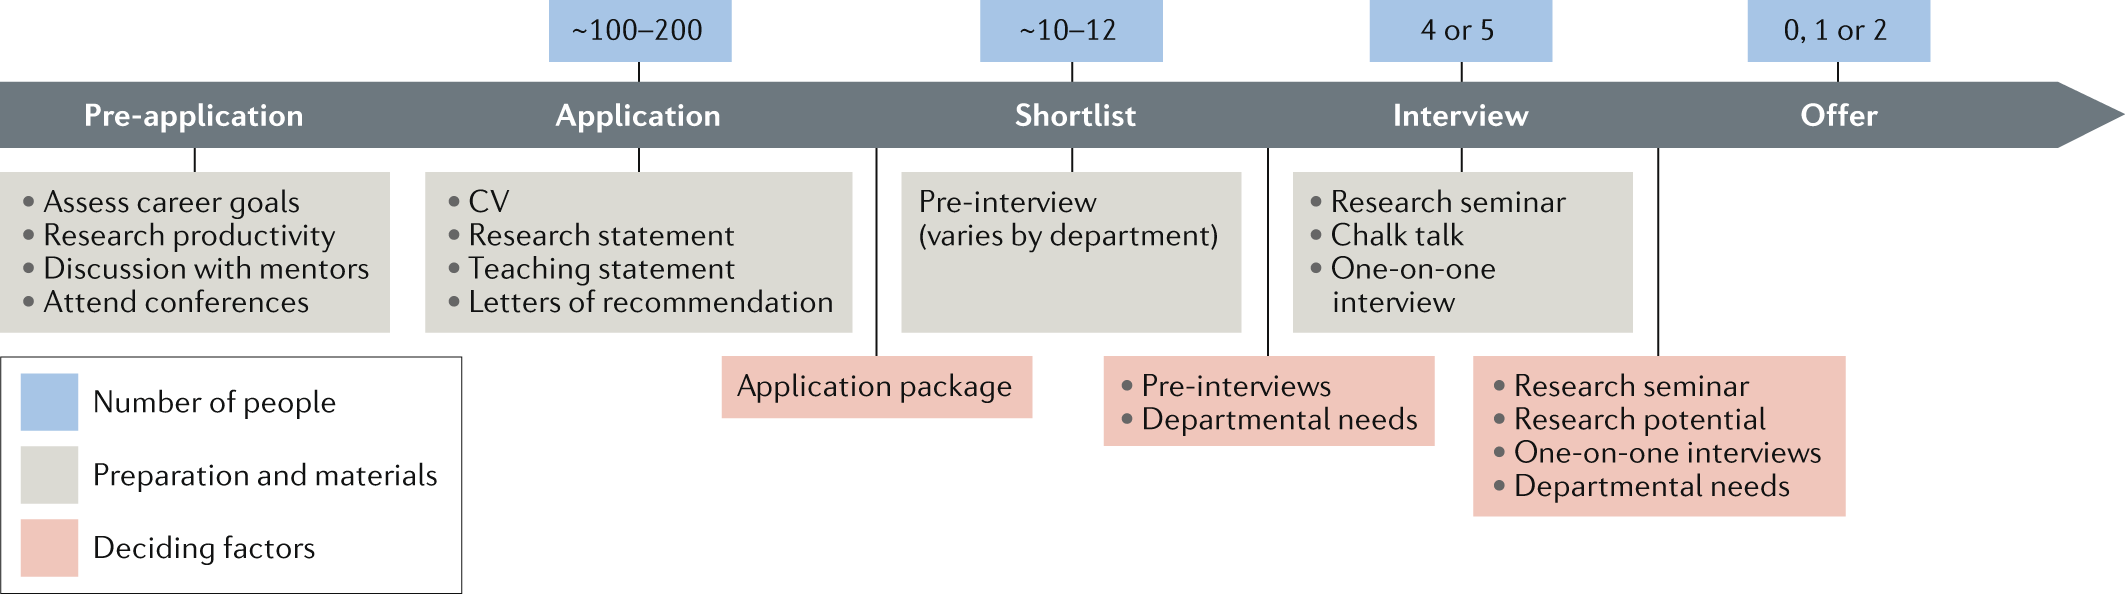 Finding and landing an academic position in materials